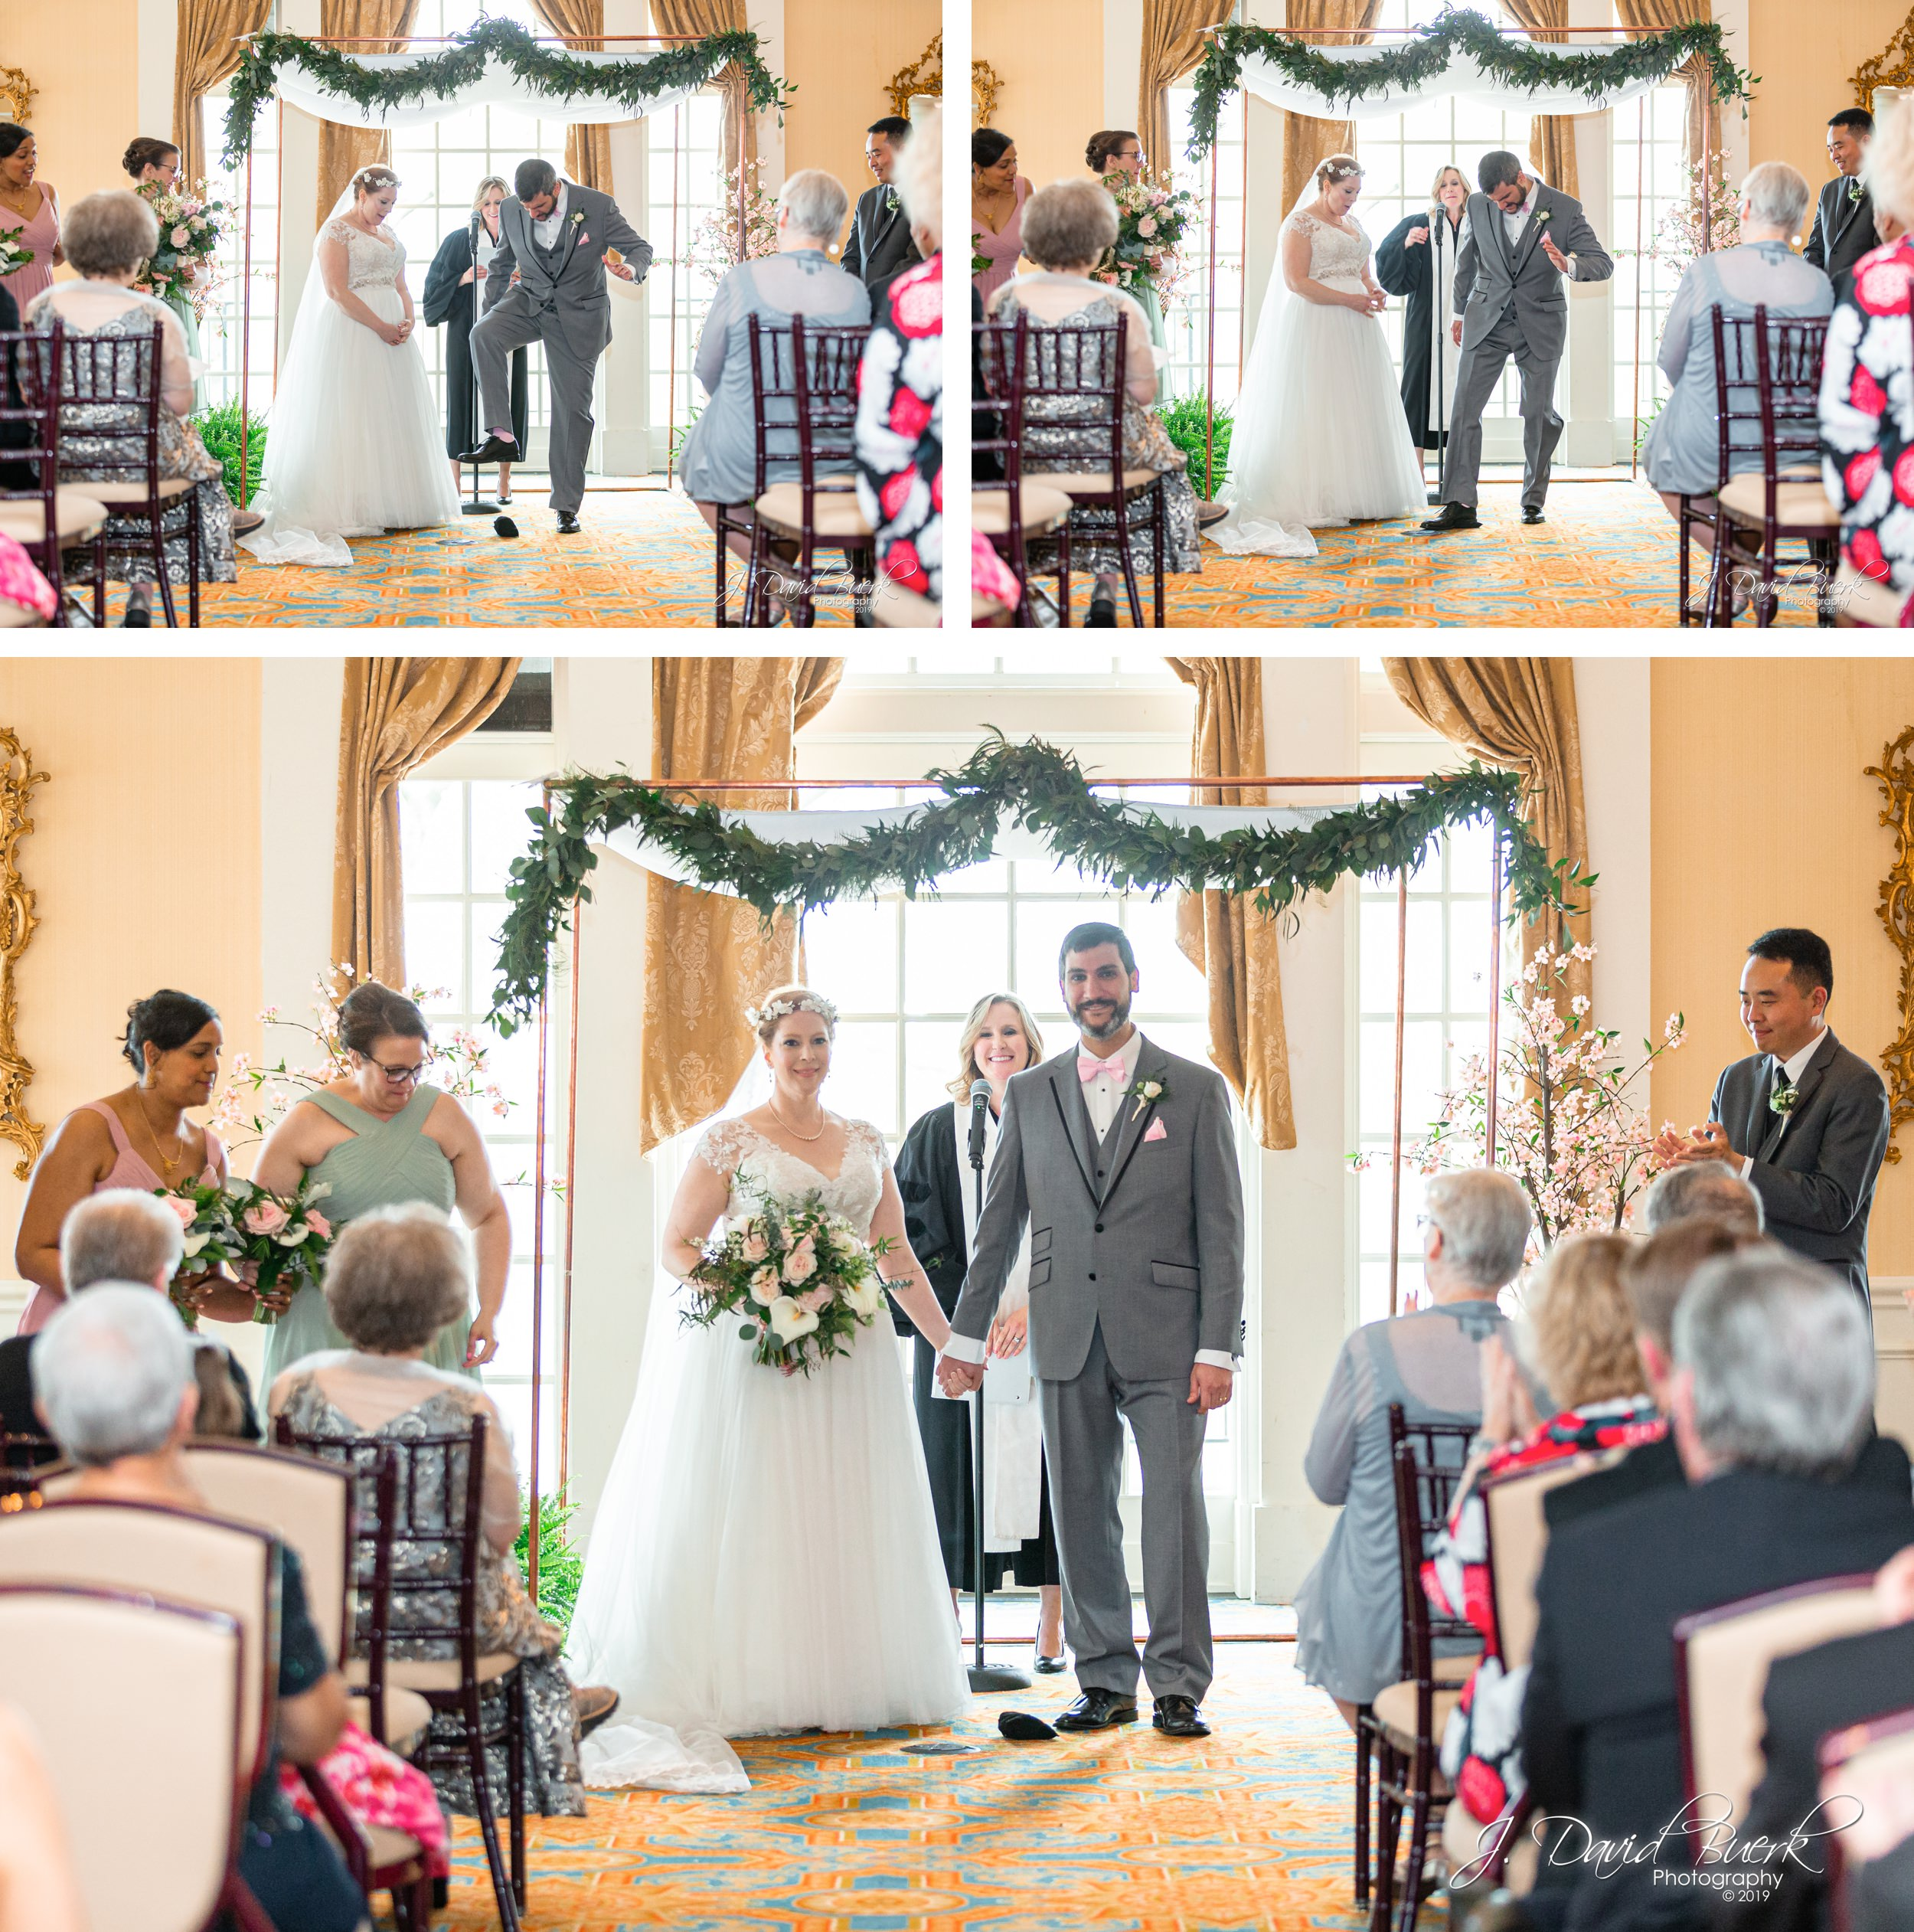 20190413 - Bayard and Margaret - Married 4.jpg